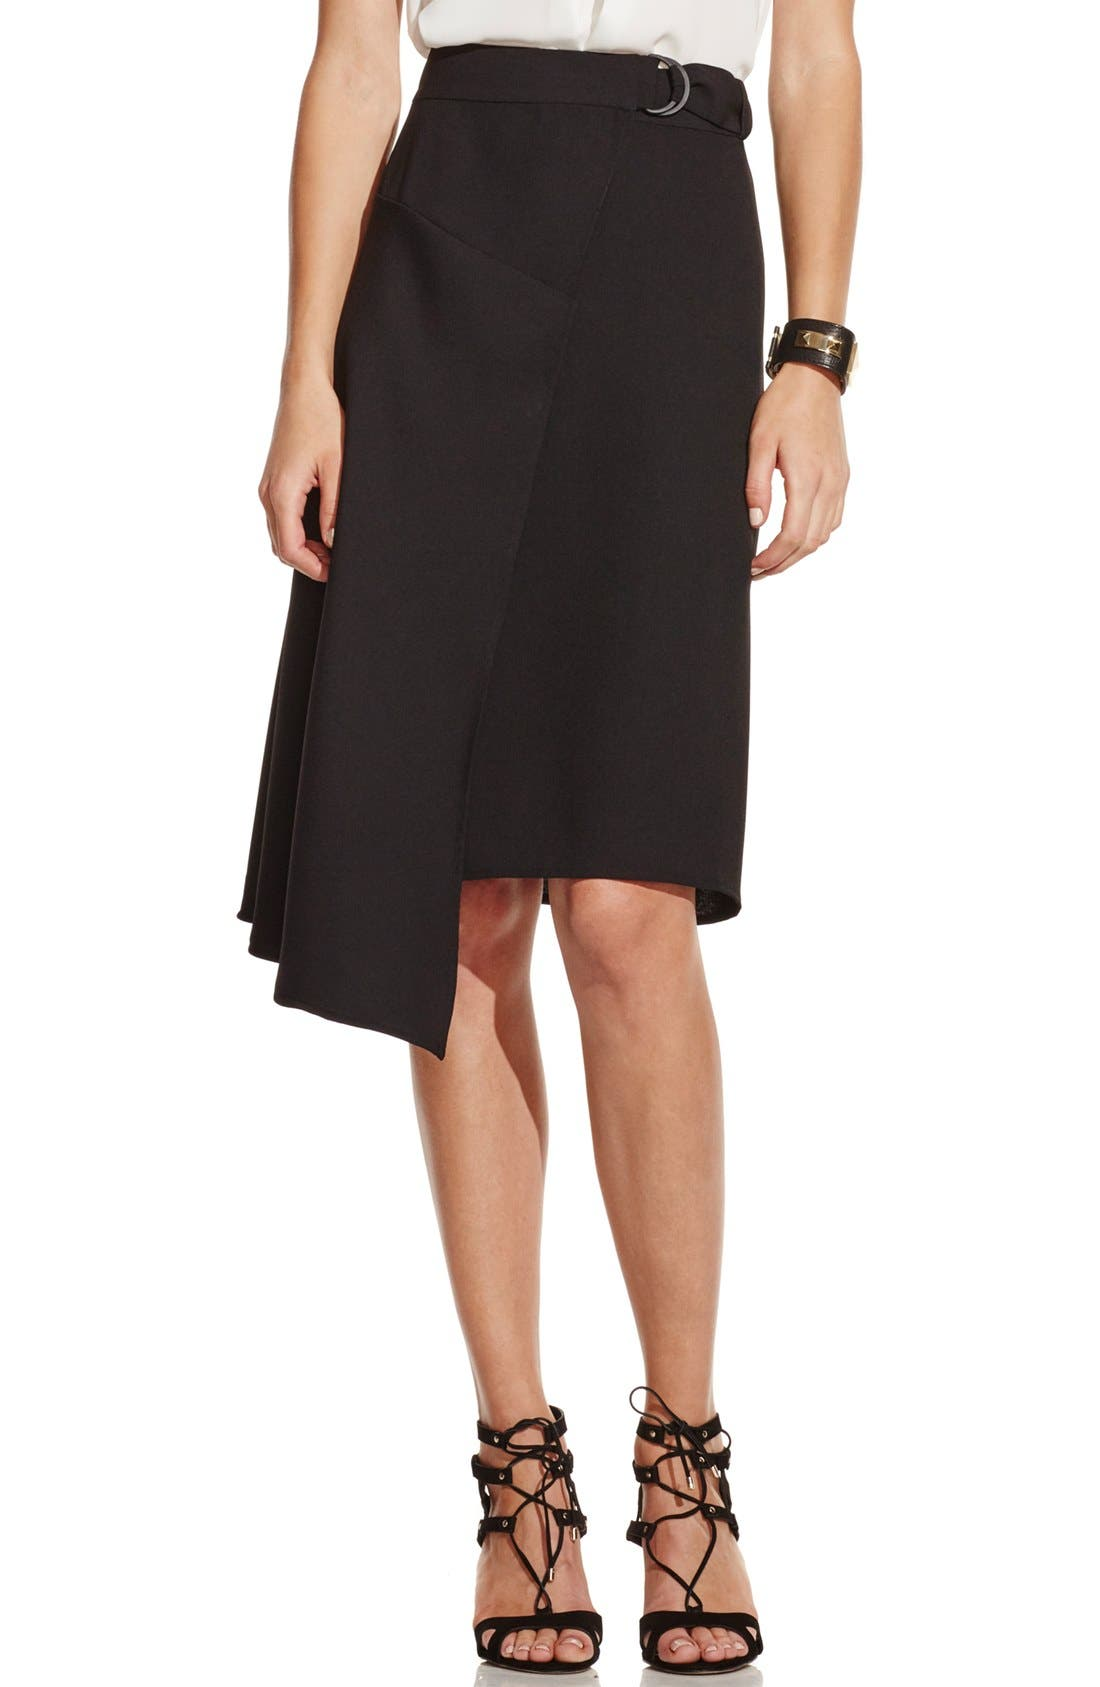 Alternate Image 1 Selected - Vince Camuto Asymmetrical Belted Wrap Skirt